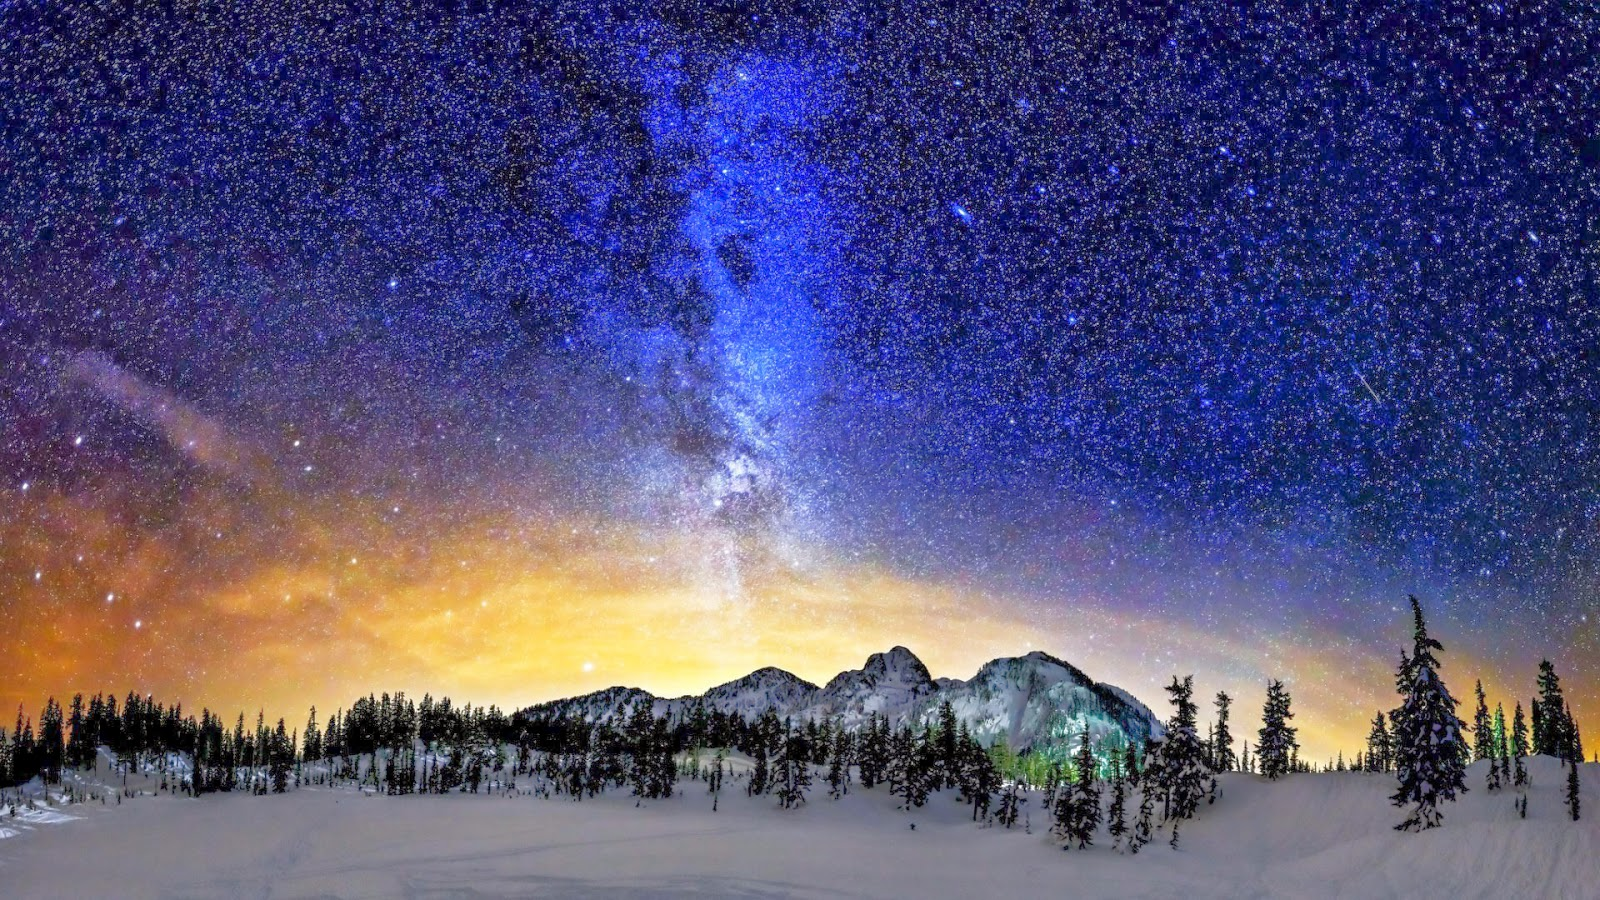 milky-way-above-snowy-mountain-beautiful-nature-images-wallpapers